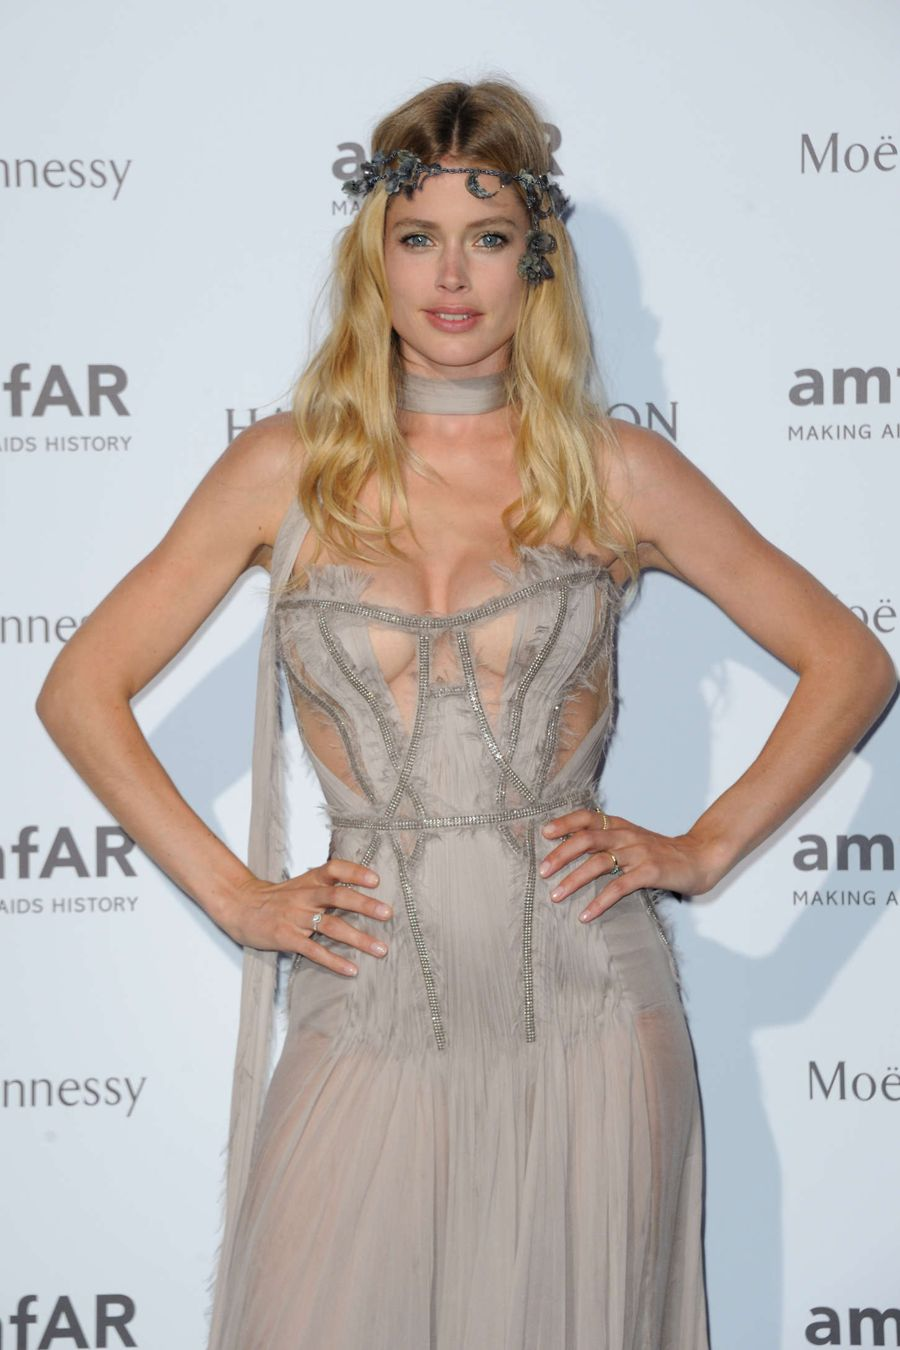 Doutzen Kroes - amfAR Dinner in Paris